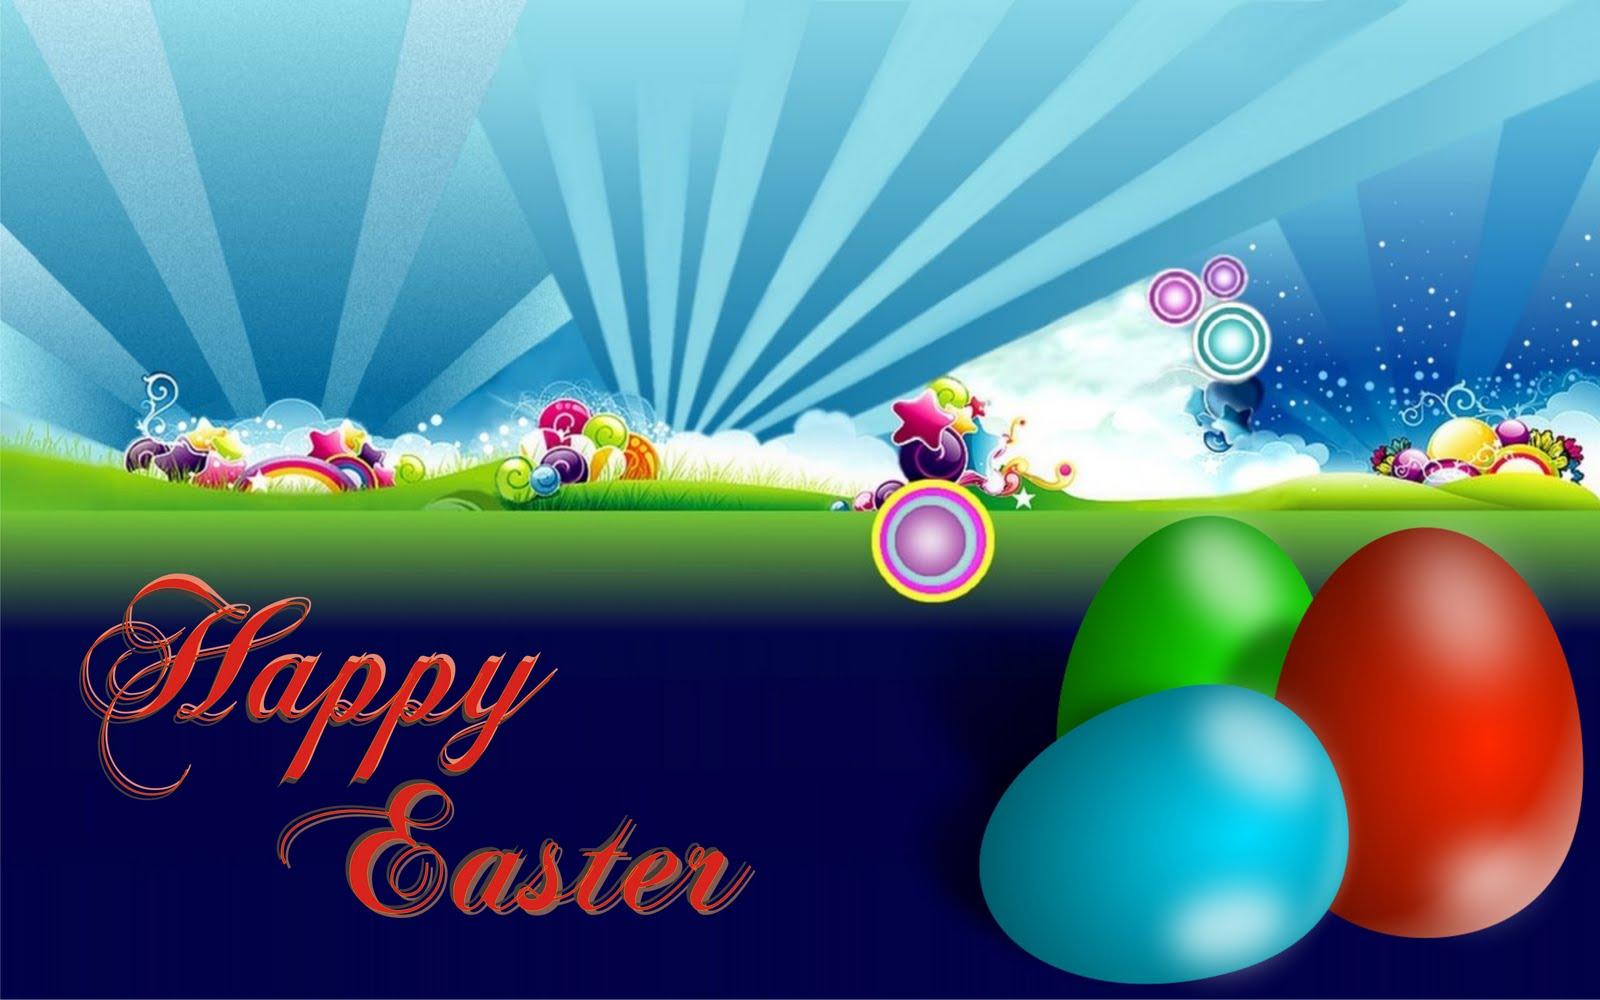 happy easter wallpaper christian - photo #16